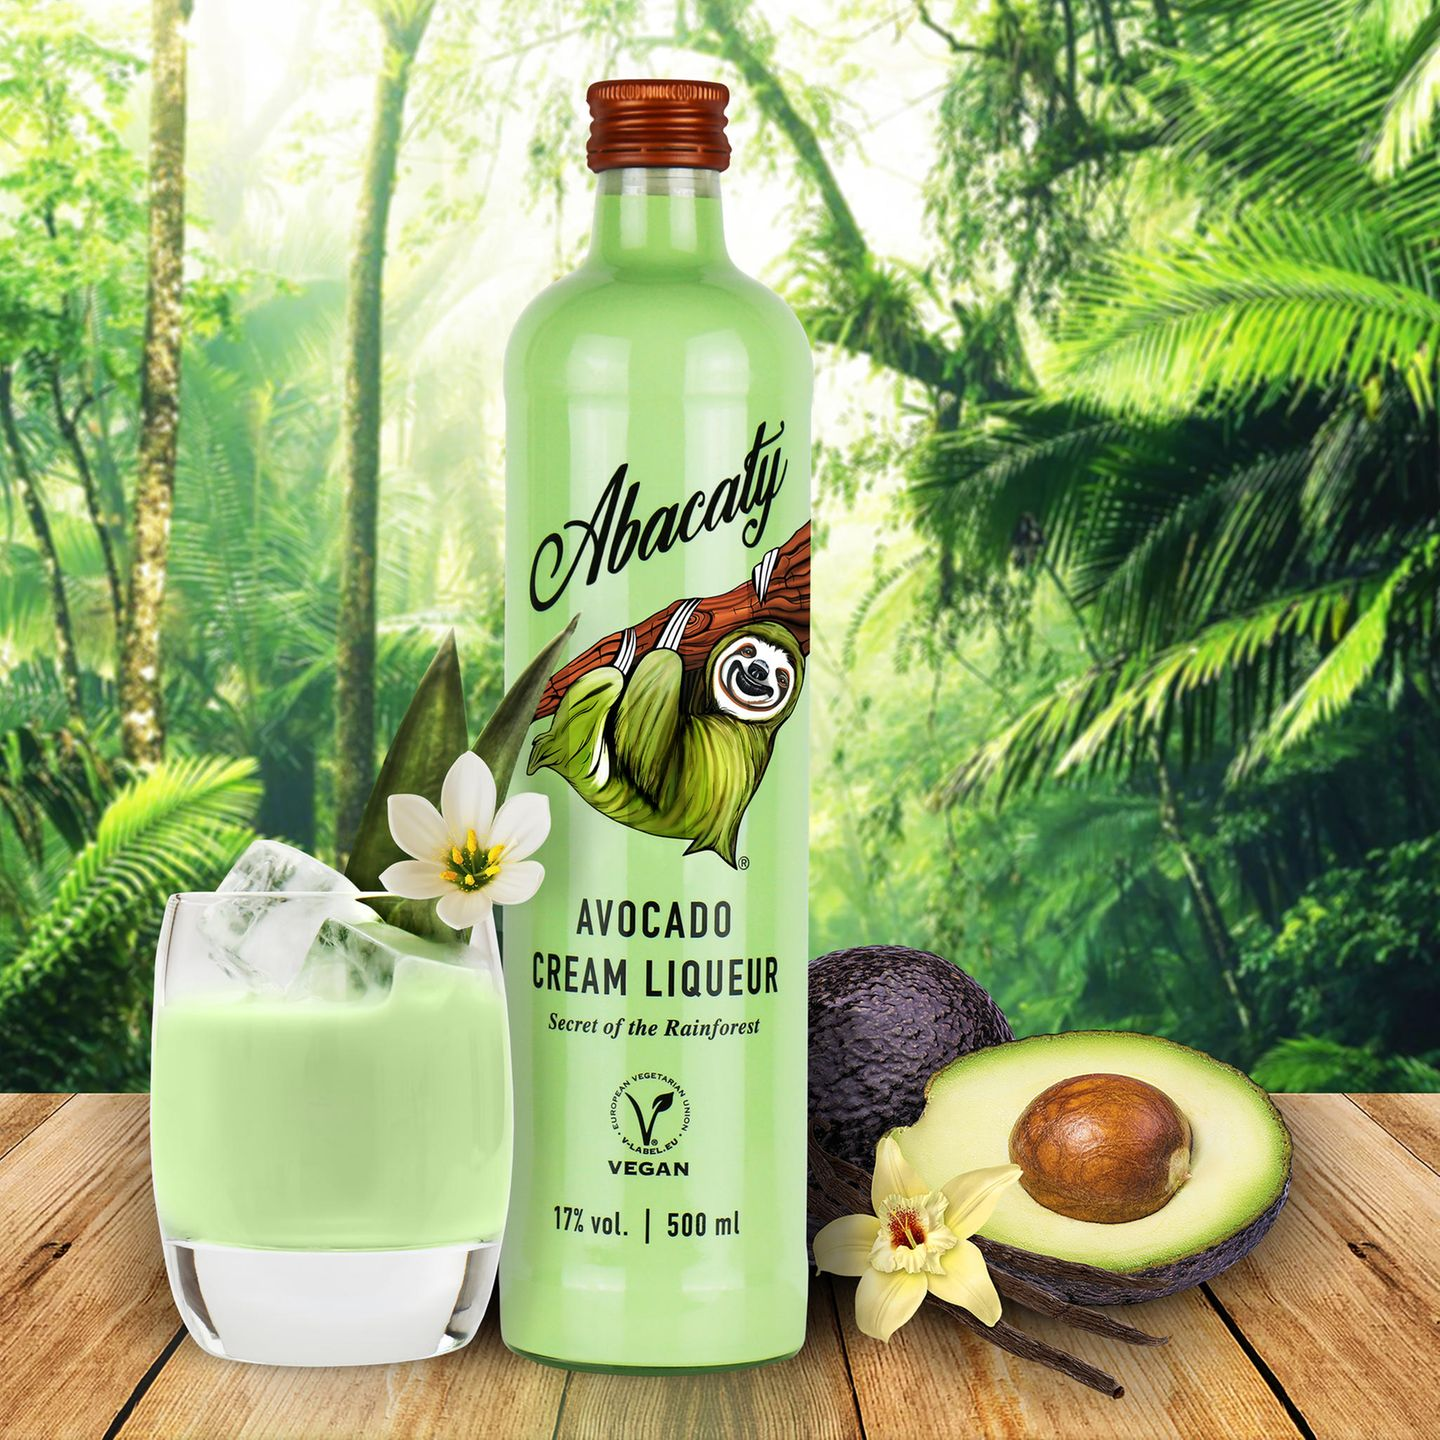 Food News: ABACATY Avocado Cream Liqueur